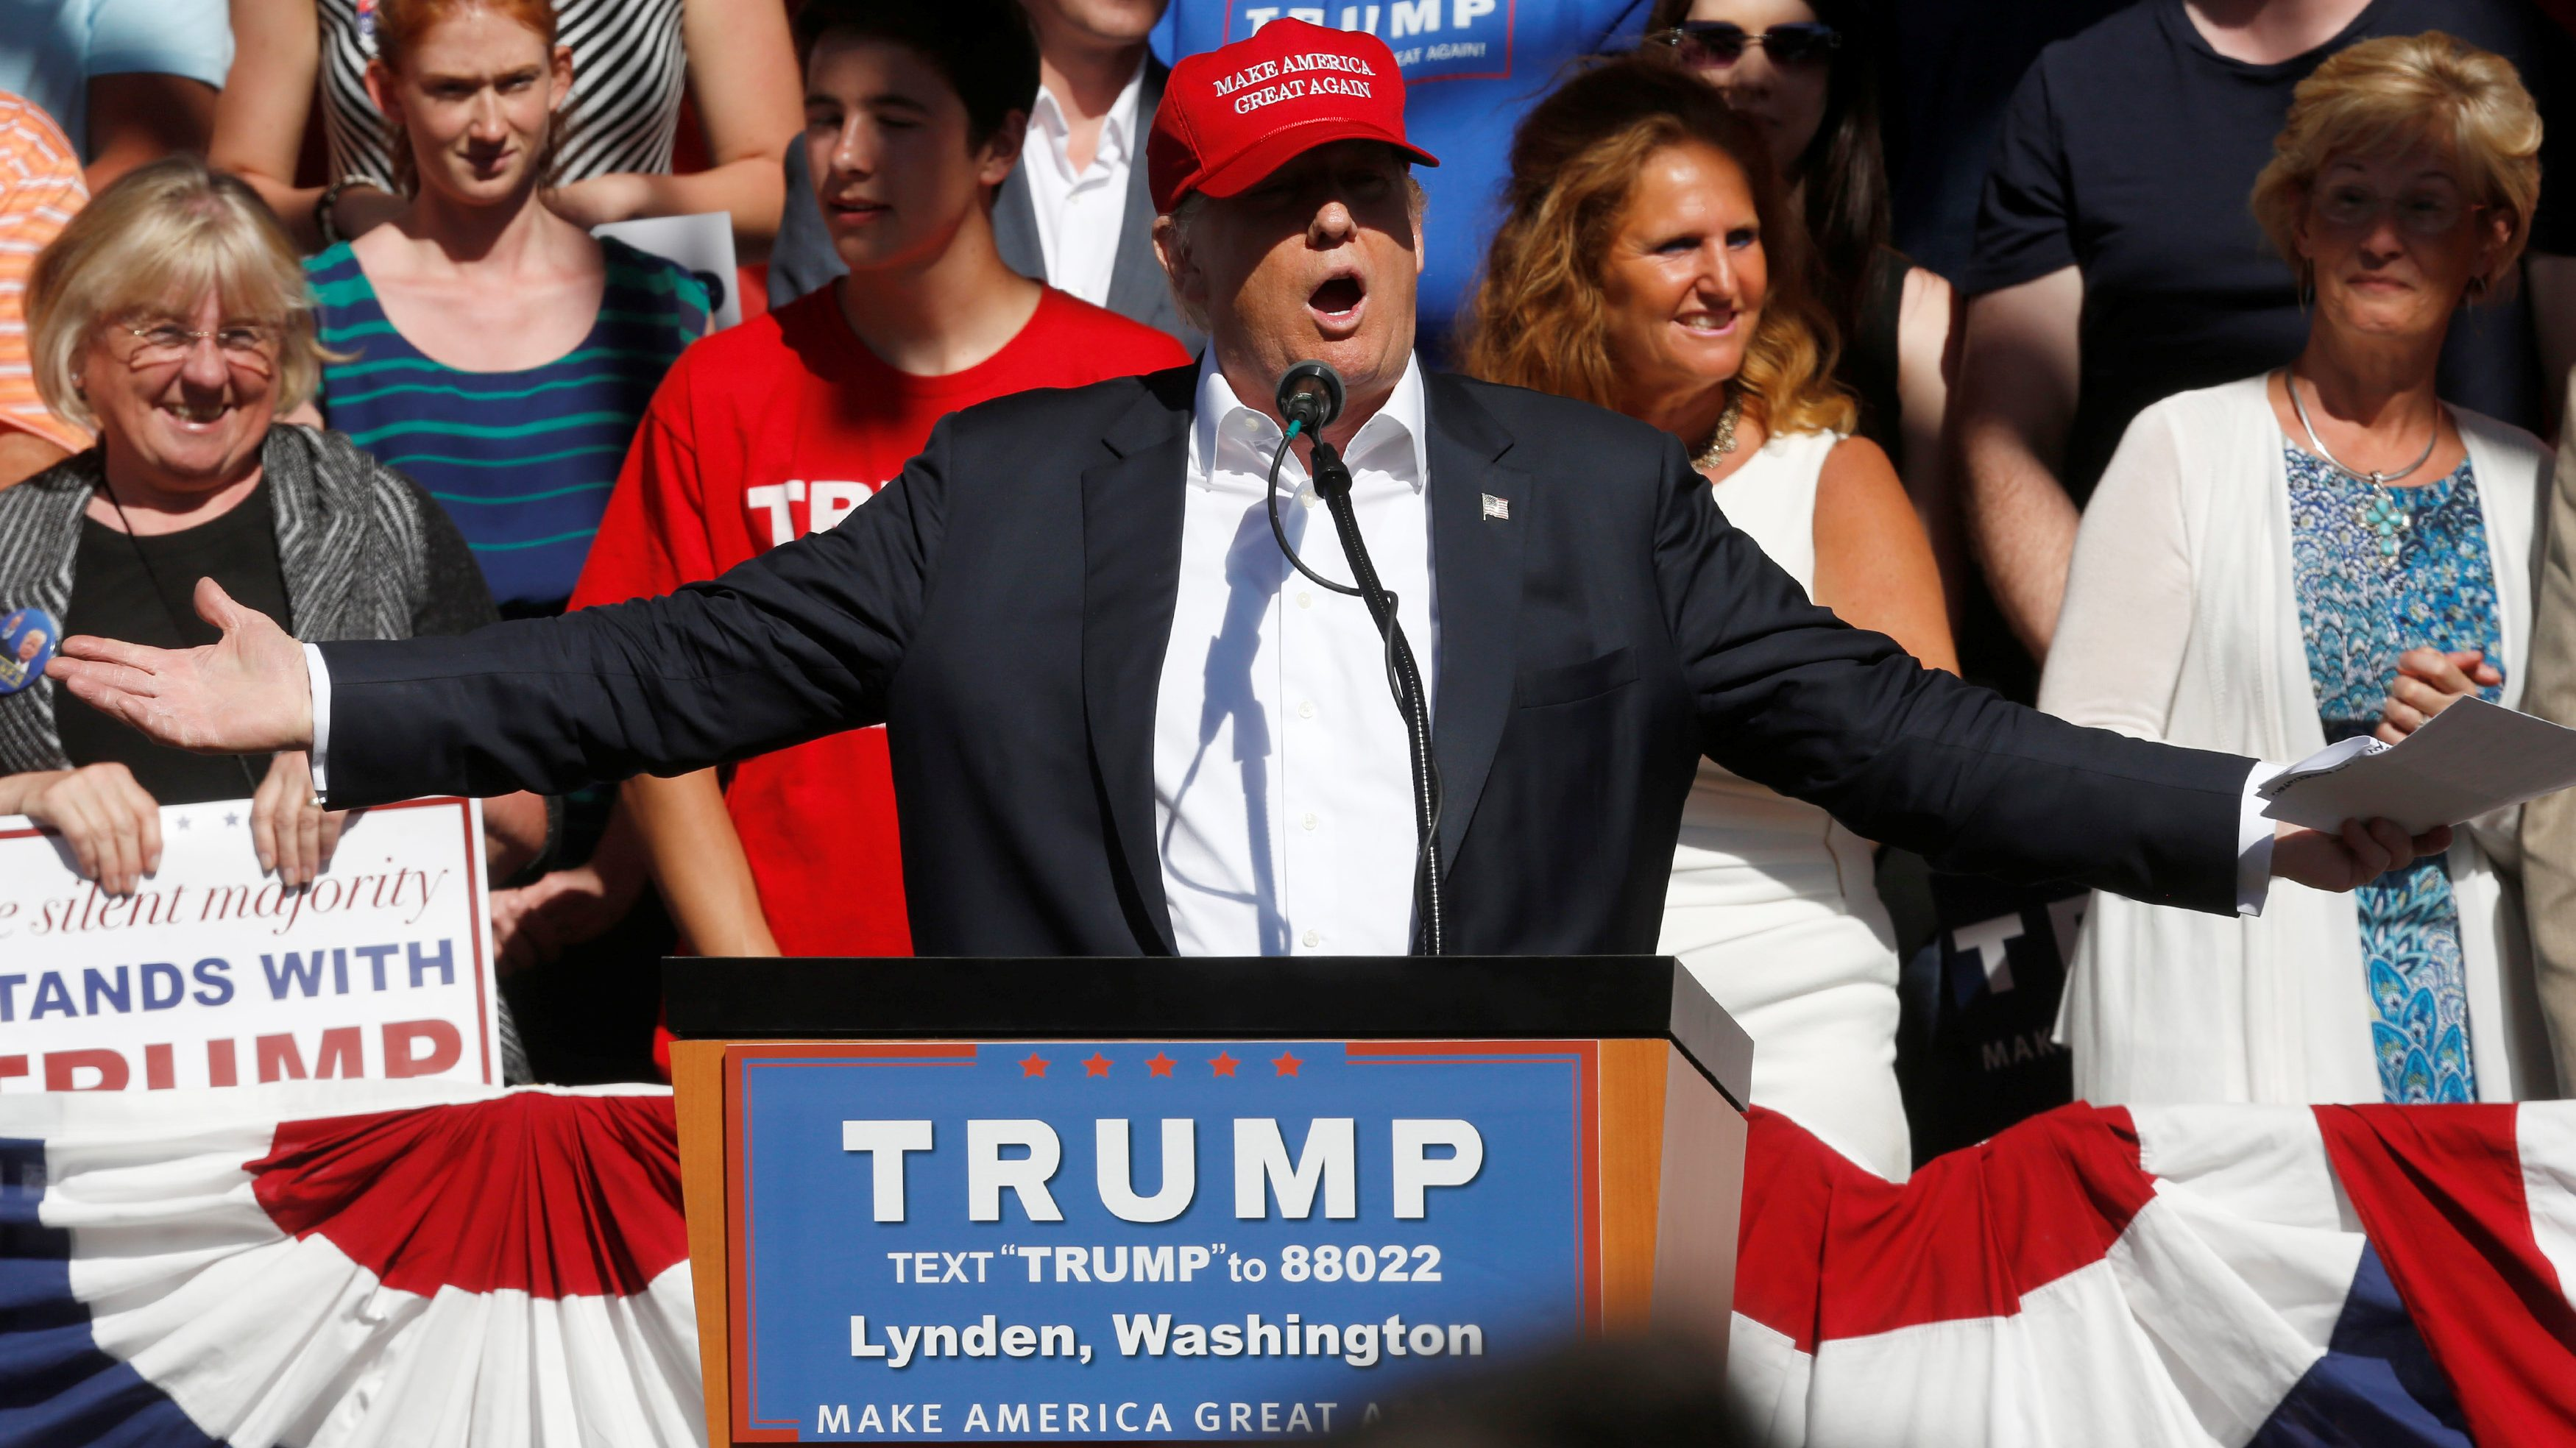 Republican U.S. presidential candidate Donald Trump speaks during a campaign rally in Lynden, Washington, U.S.